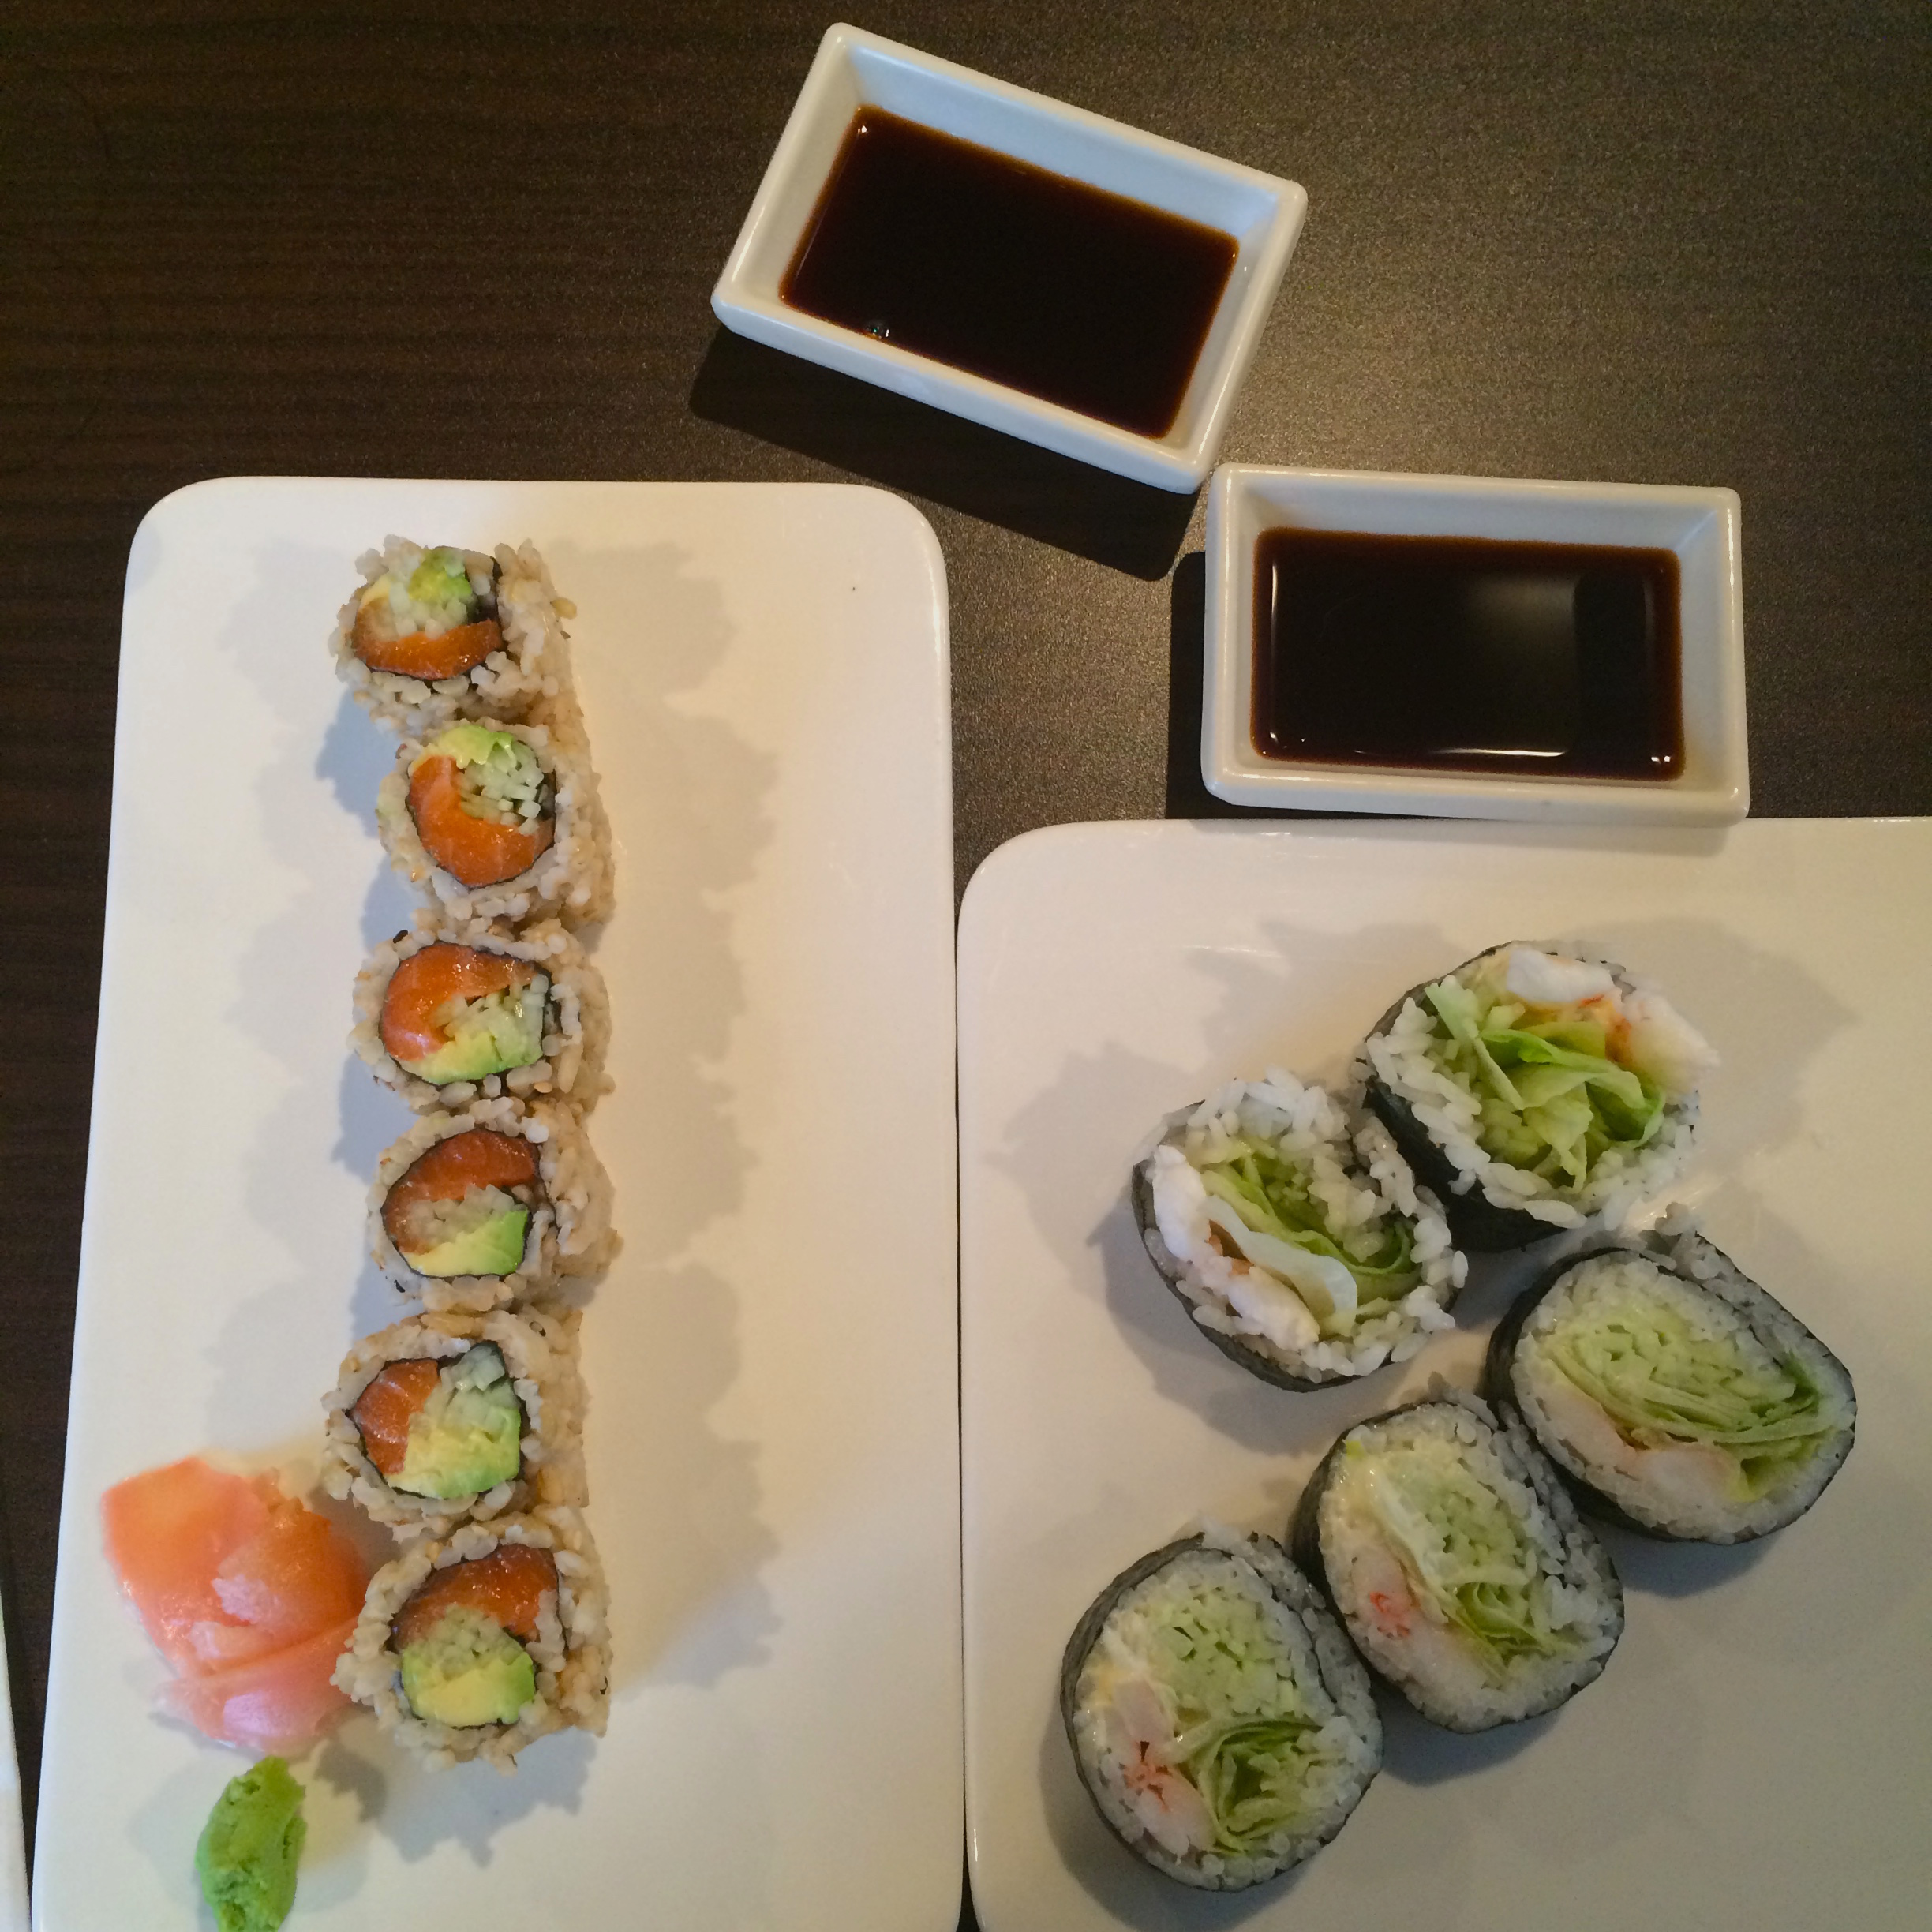 Two types of sushi rolls on display. (Photo provided by Christina Madera)